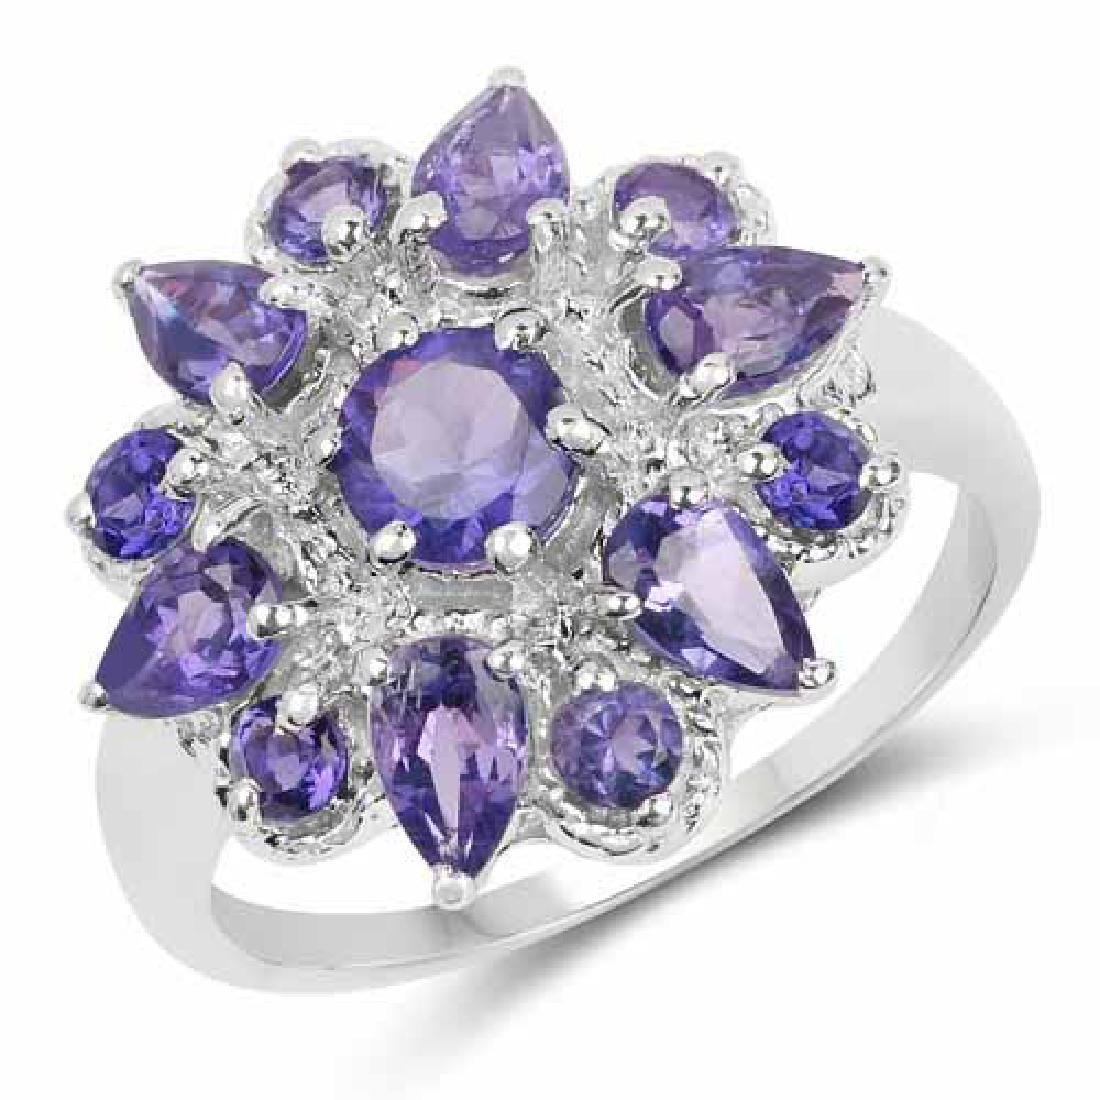 2.19 Carat Genuine Amethyst .925 Sterling Silver Ring